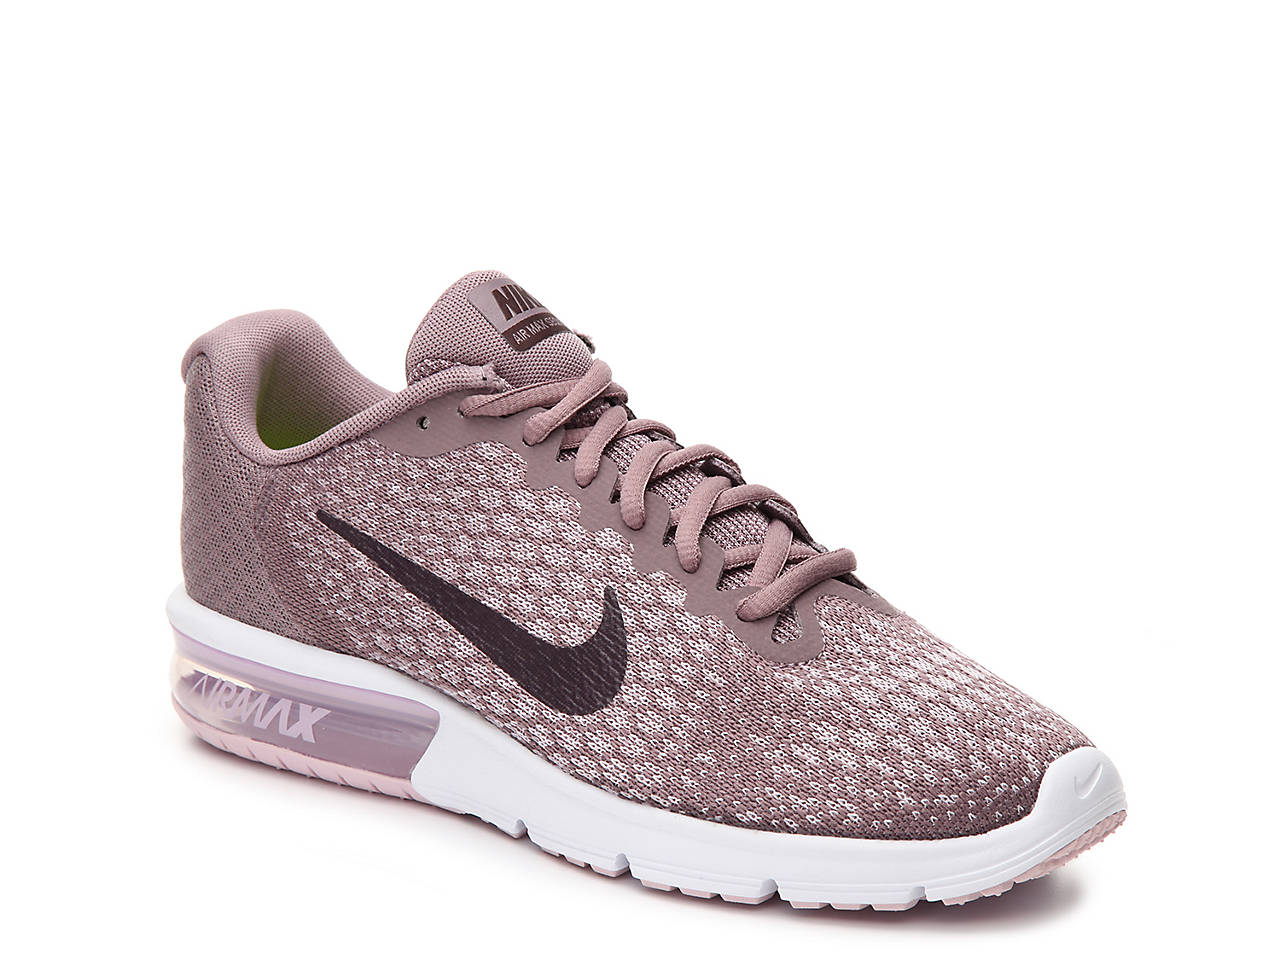 6628fd419c Nike Air Max Sequent 2 Performance Running Shoe - Women's Women's ...